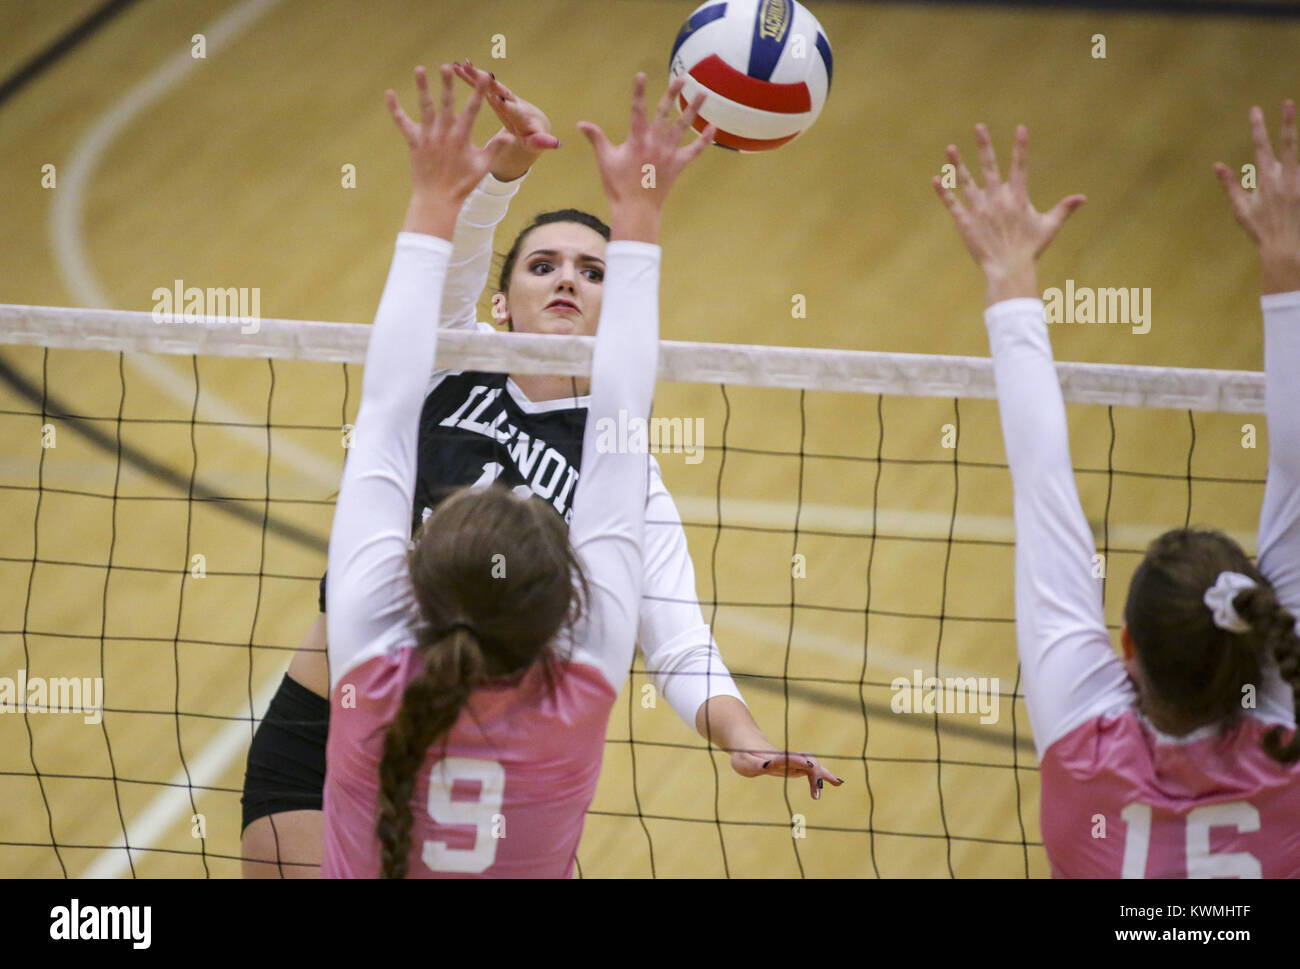 Davenport, Iowa, USA. 20th Nov, 2017. Illinois' Lily Gerth of Geneseo (11) attacks to hit the ball over the - Stock Image